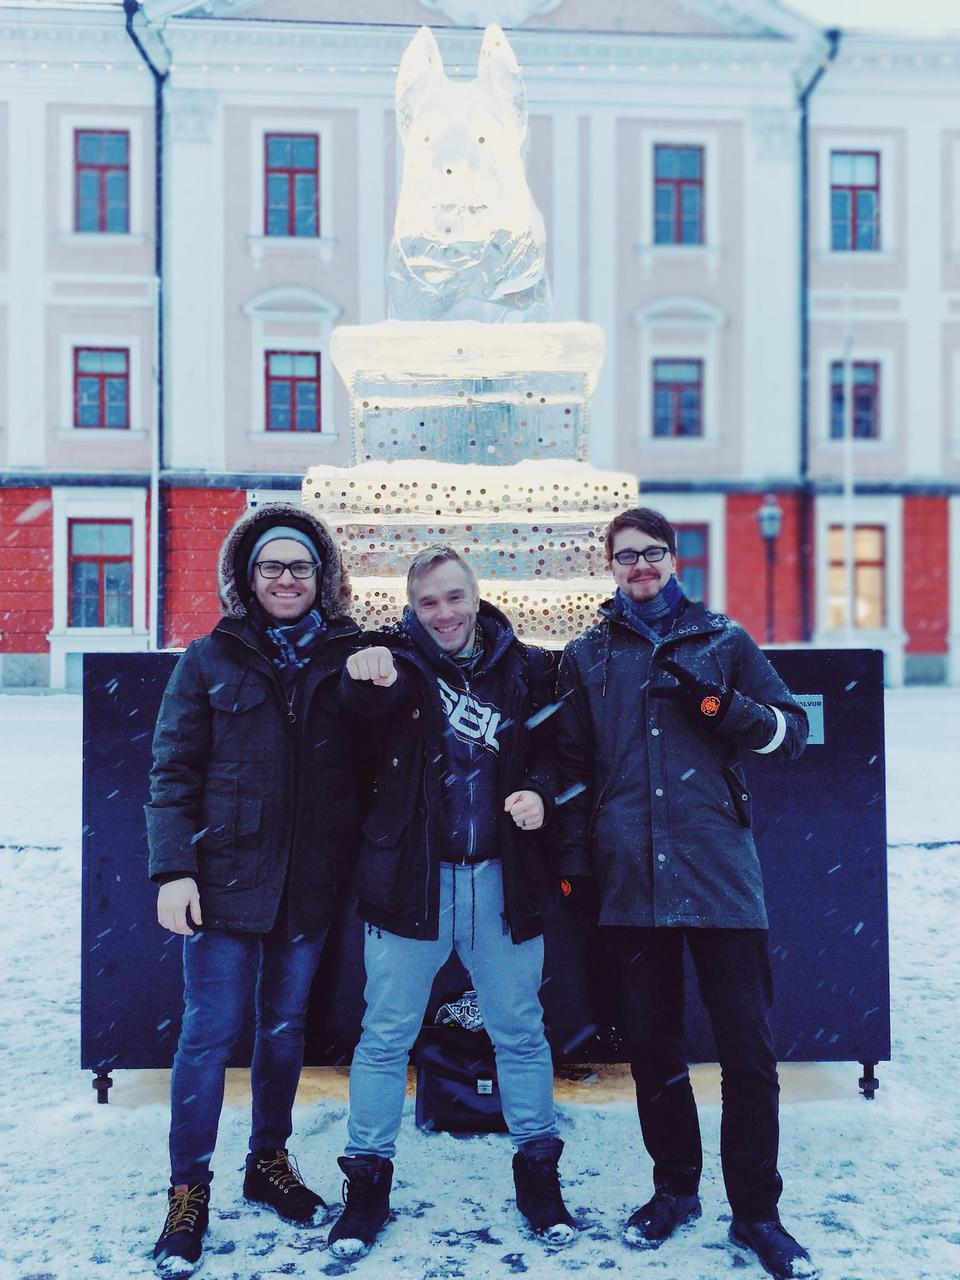 Mõtteaine in 2018: Mathias-Erik Tempel, Jorgen Matsi, and Mats Volberg in the Tartu Town Square.